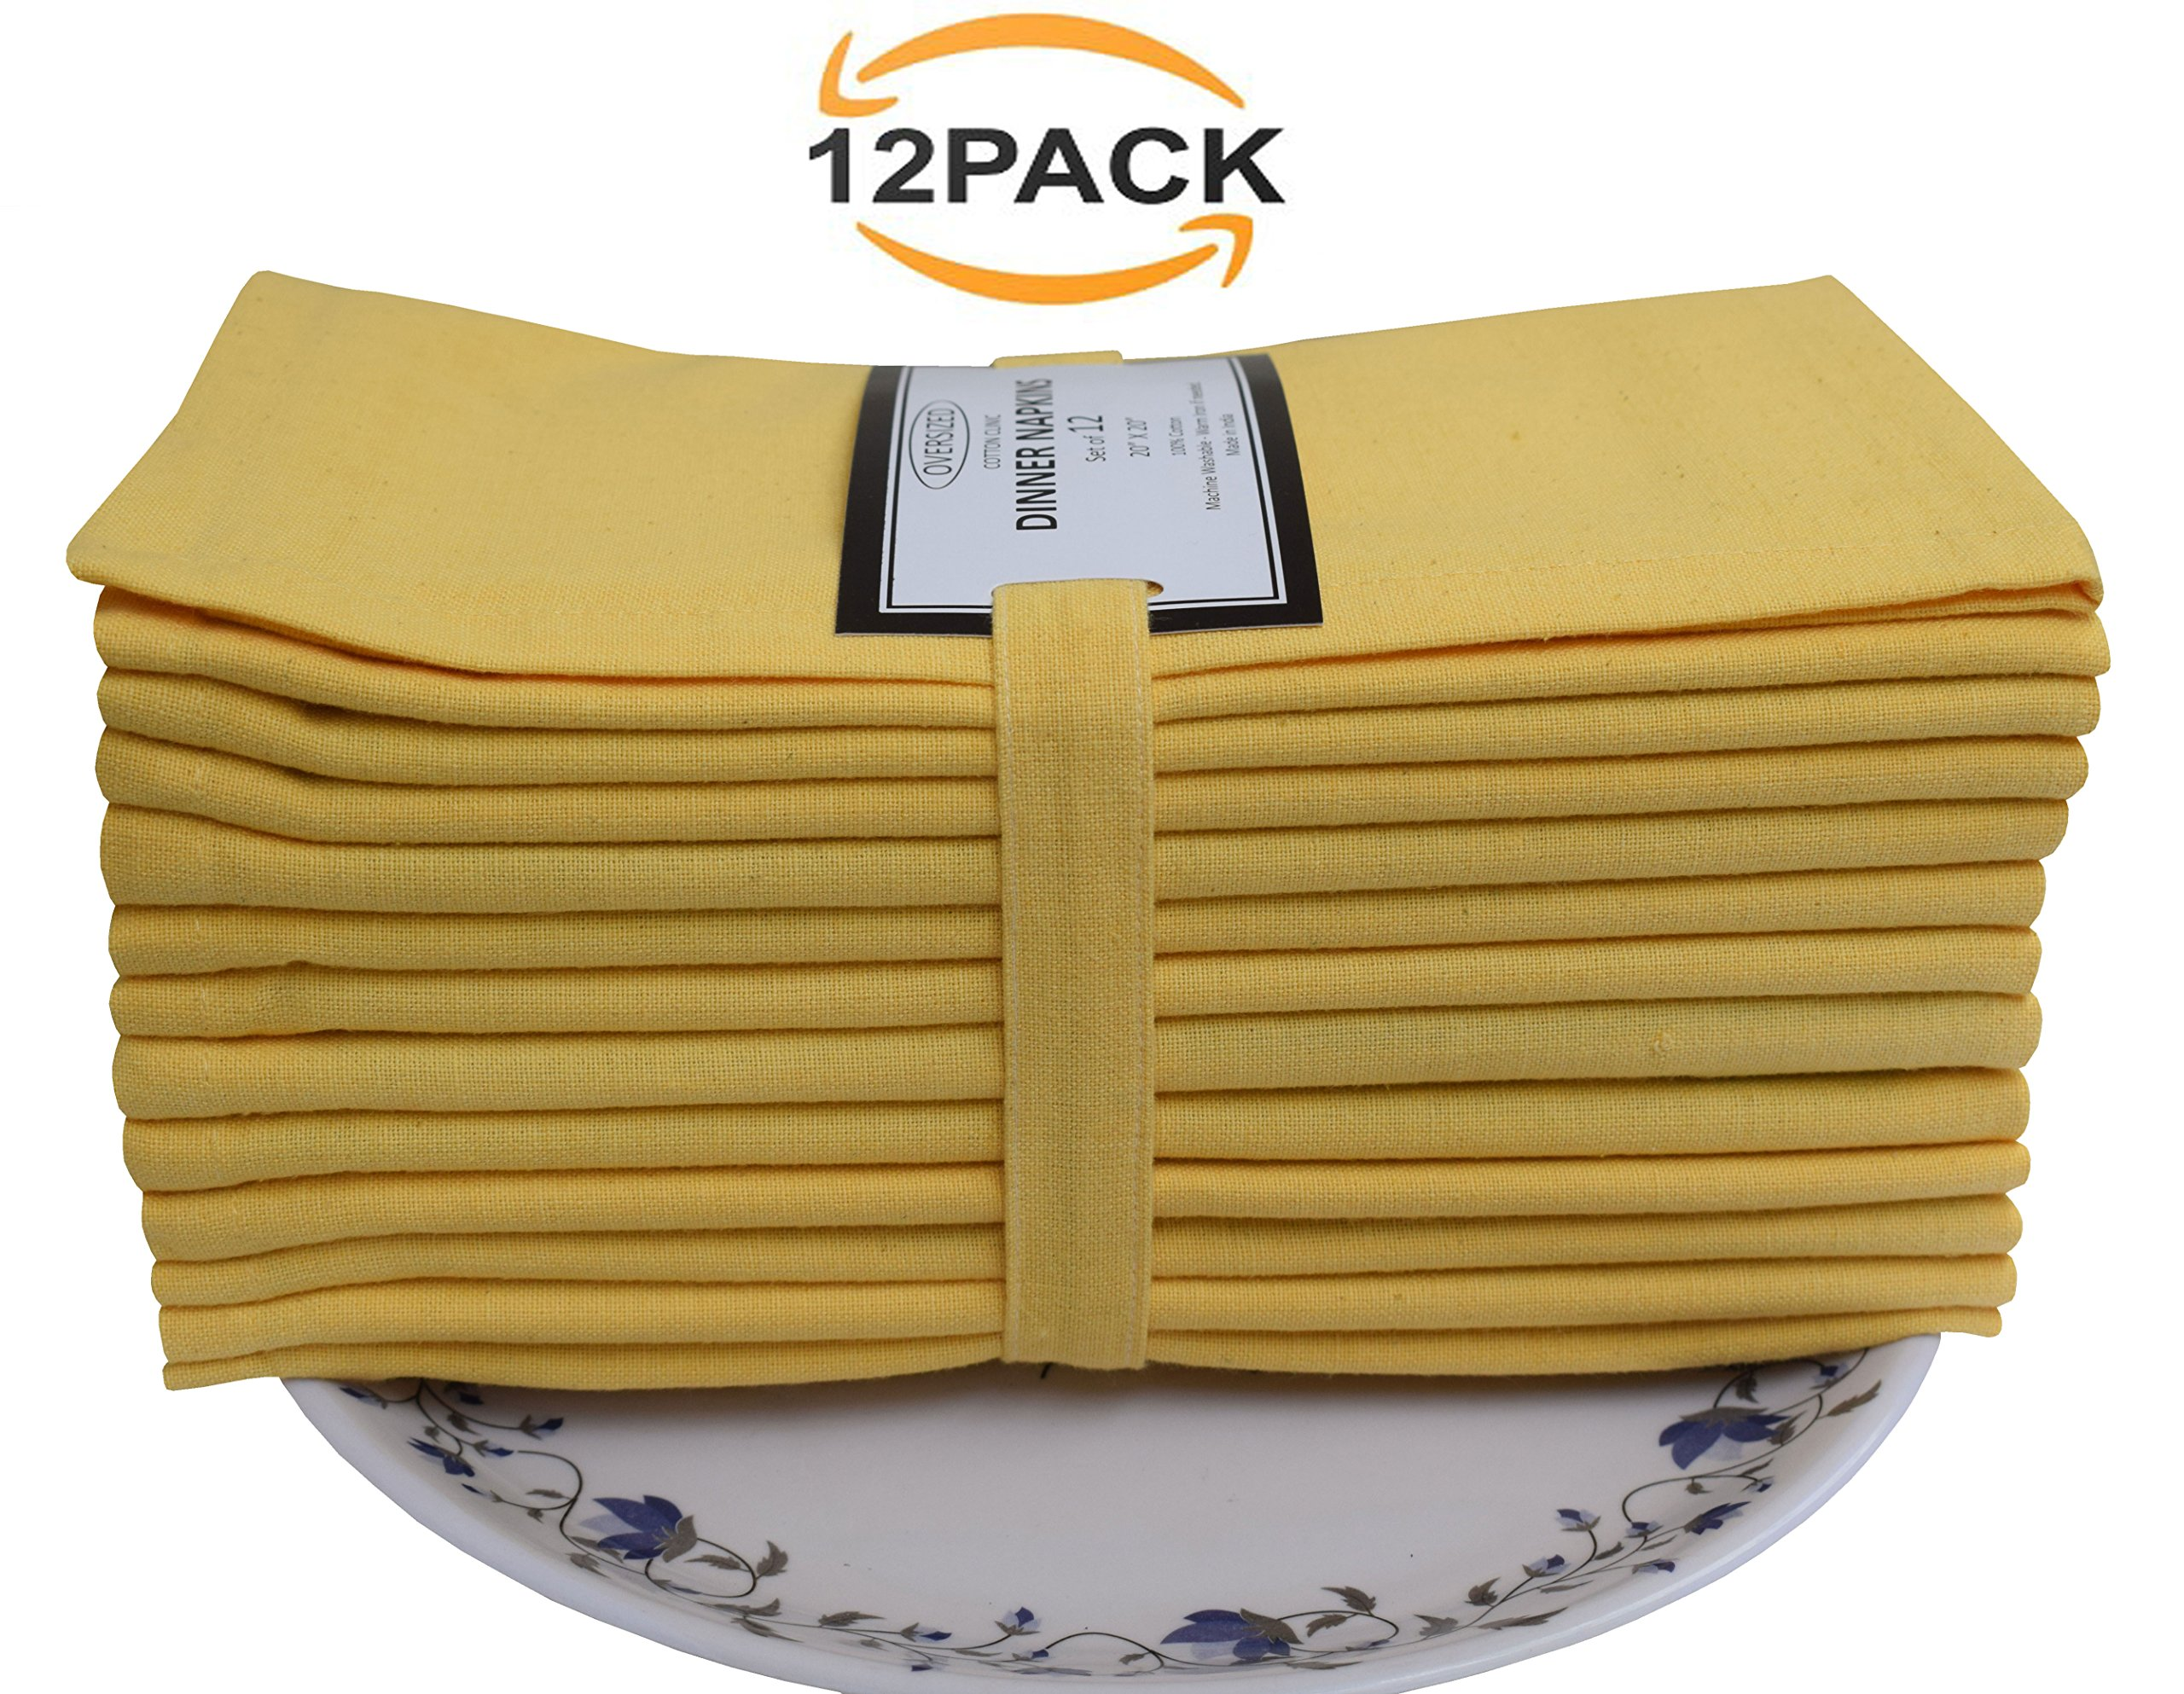 12 Pack Solid Dinner Napkins, Oversized, 20x20, Yellow Color, 100% Cotton, Cocktails Napkins, Decorative Napkins, Wedding Napkins, Tailored with mitered corners & generous hem, Machine Washable